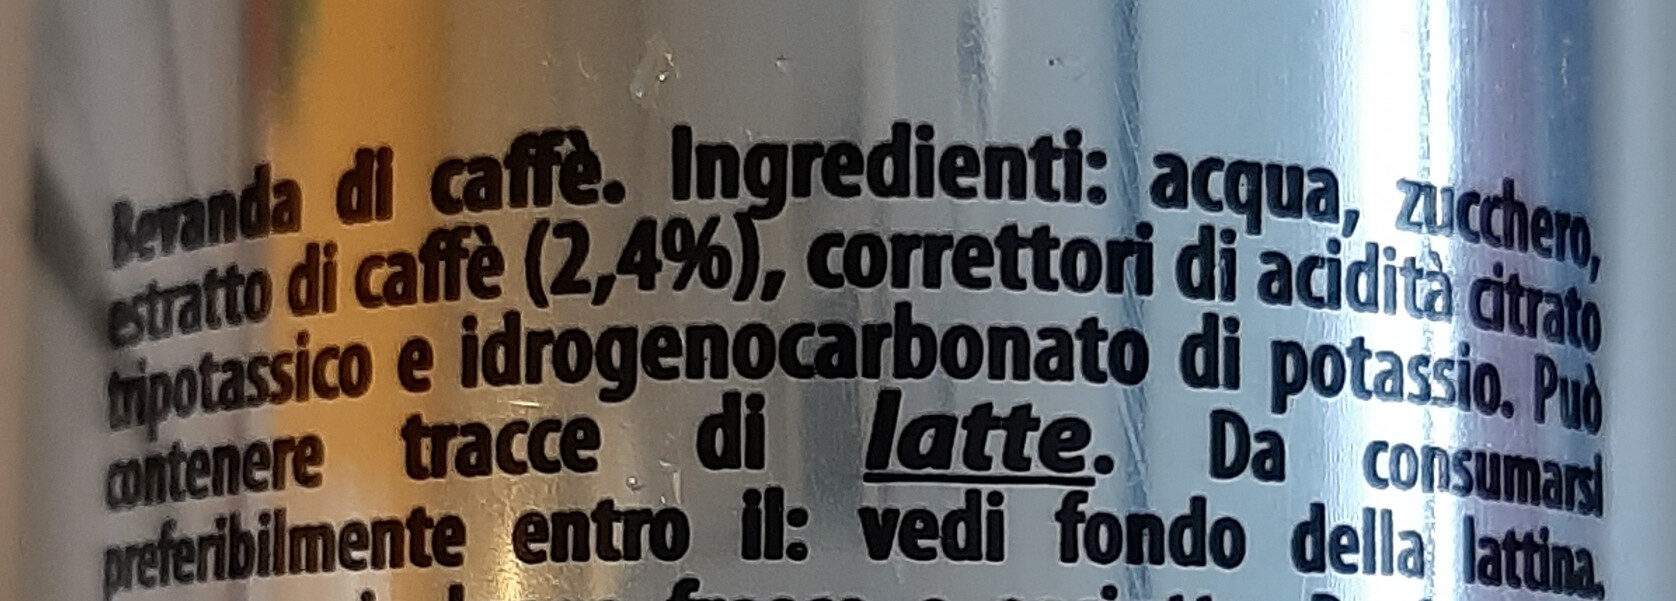 Coffee drink - Ingredients - it